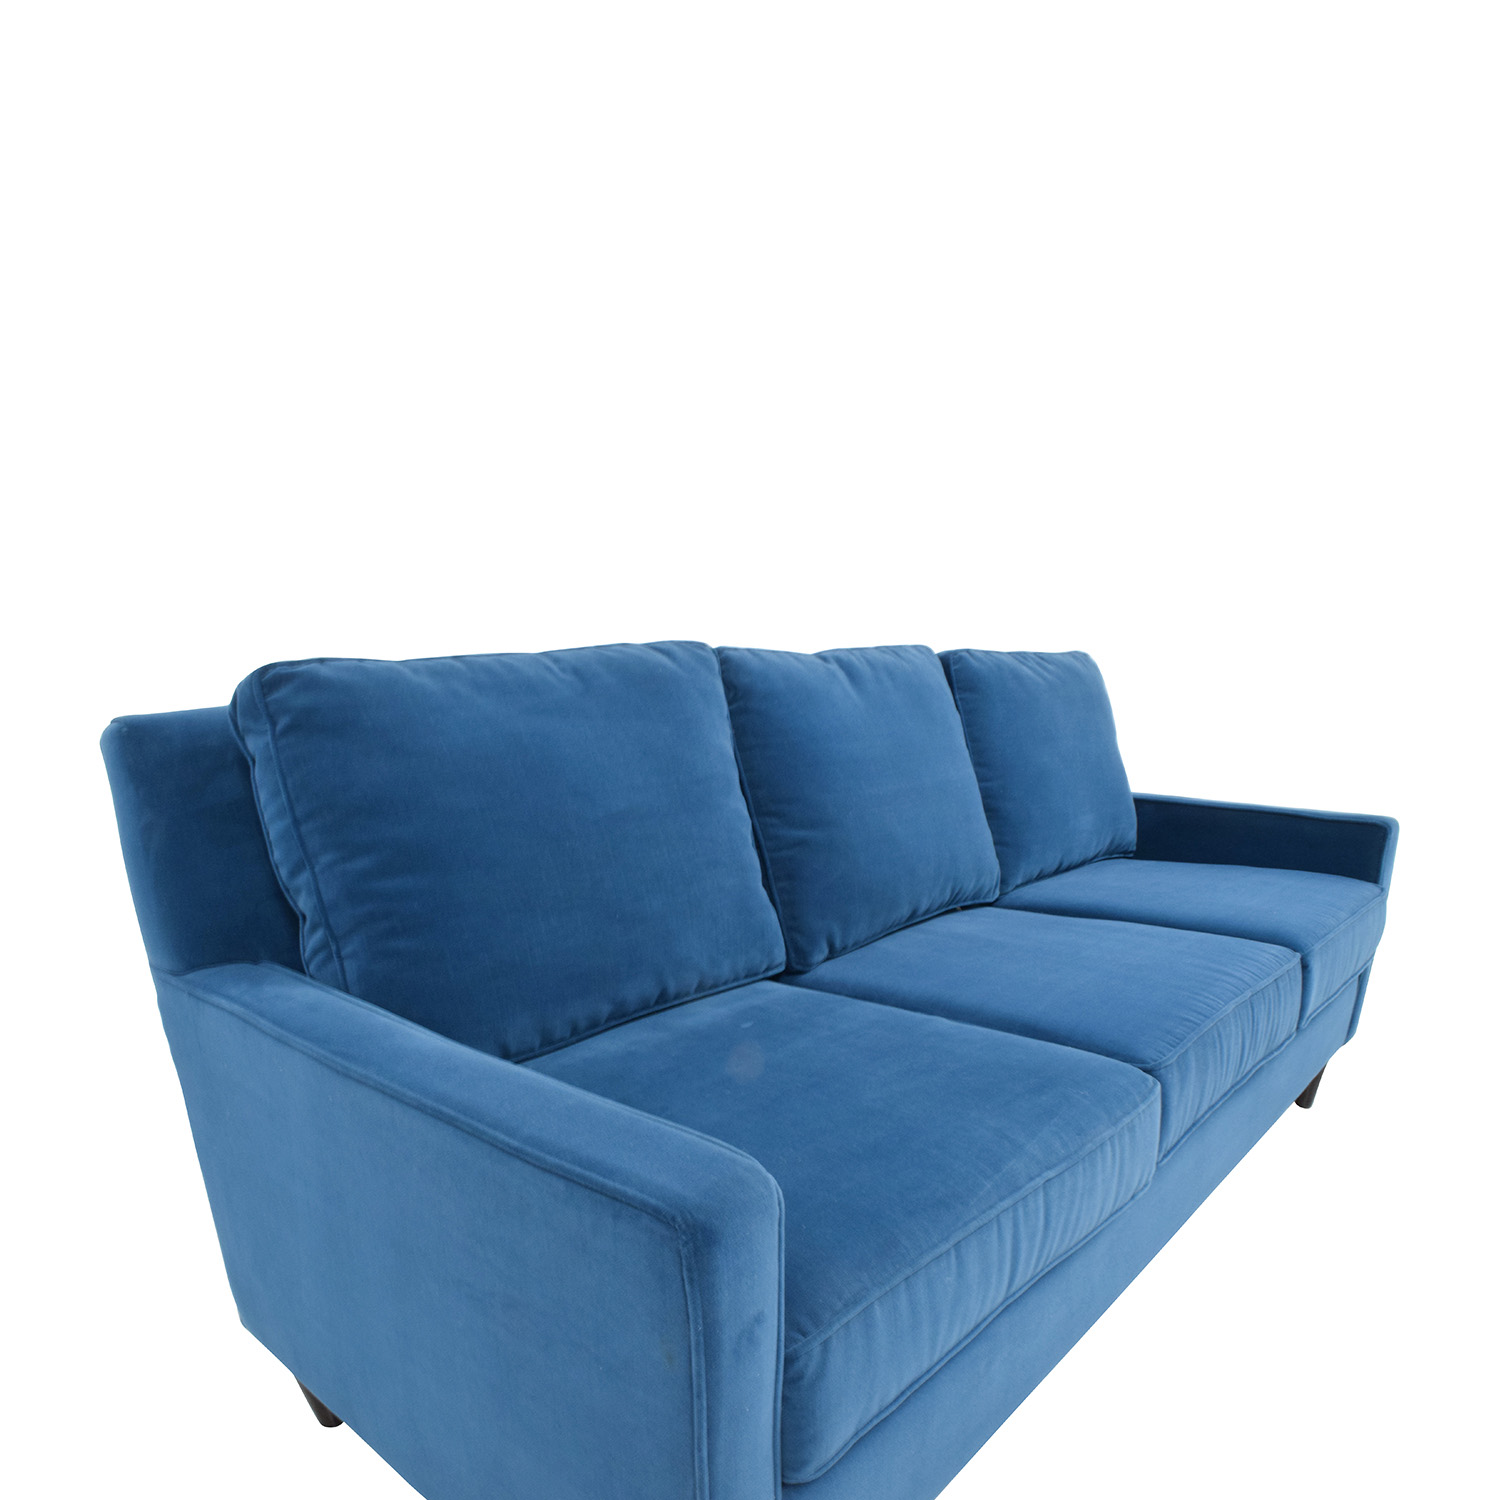 Brentwood Classics Brentwood Classics Jimmy Sofa in Admiral used